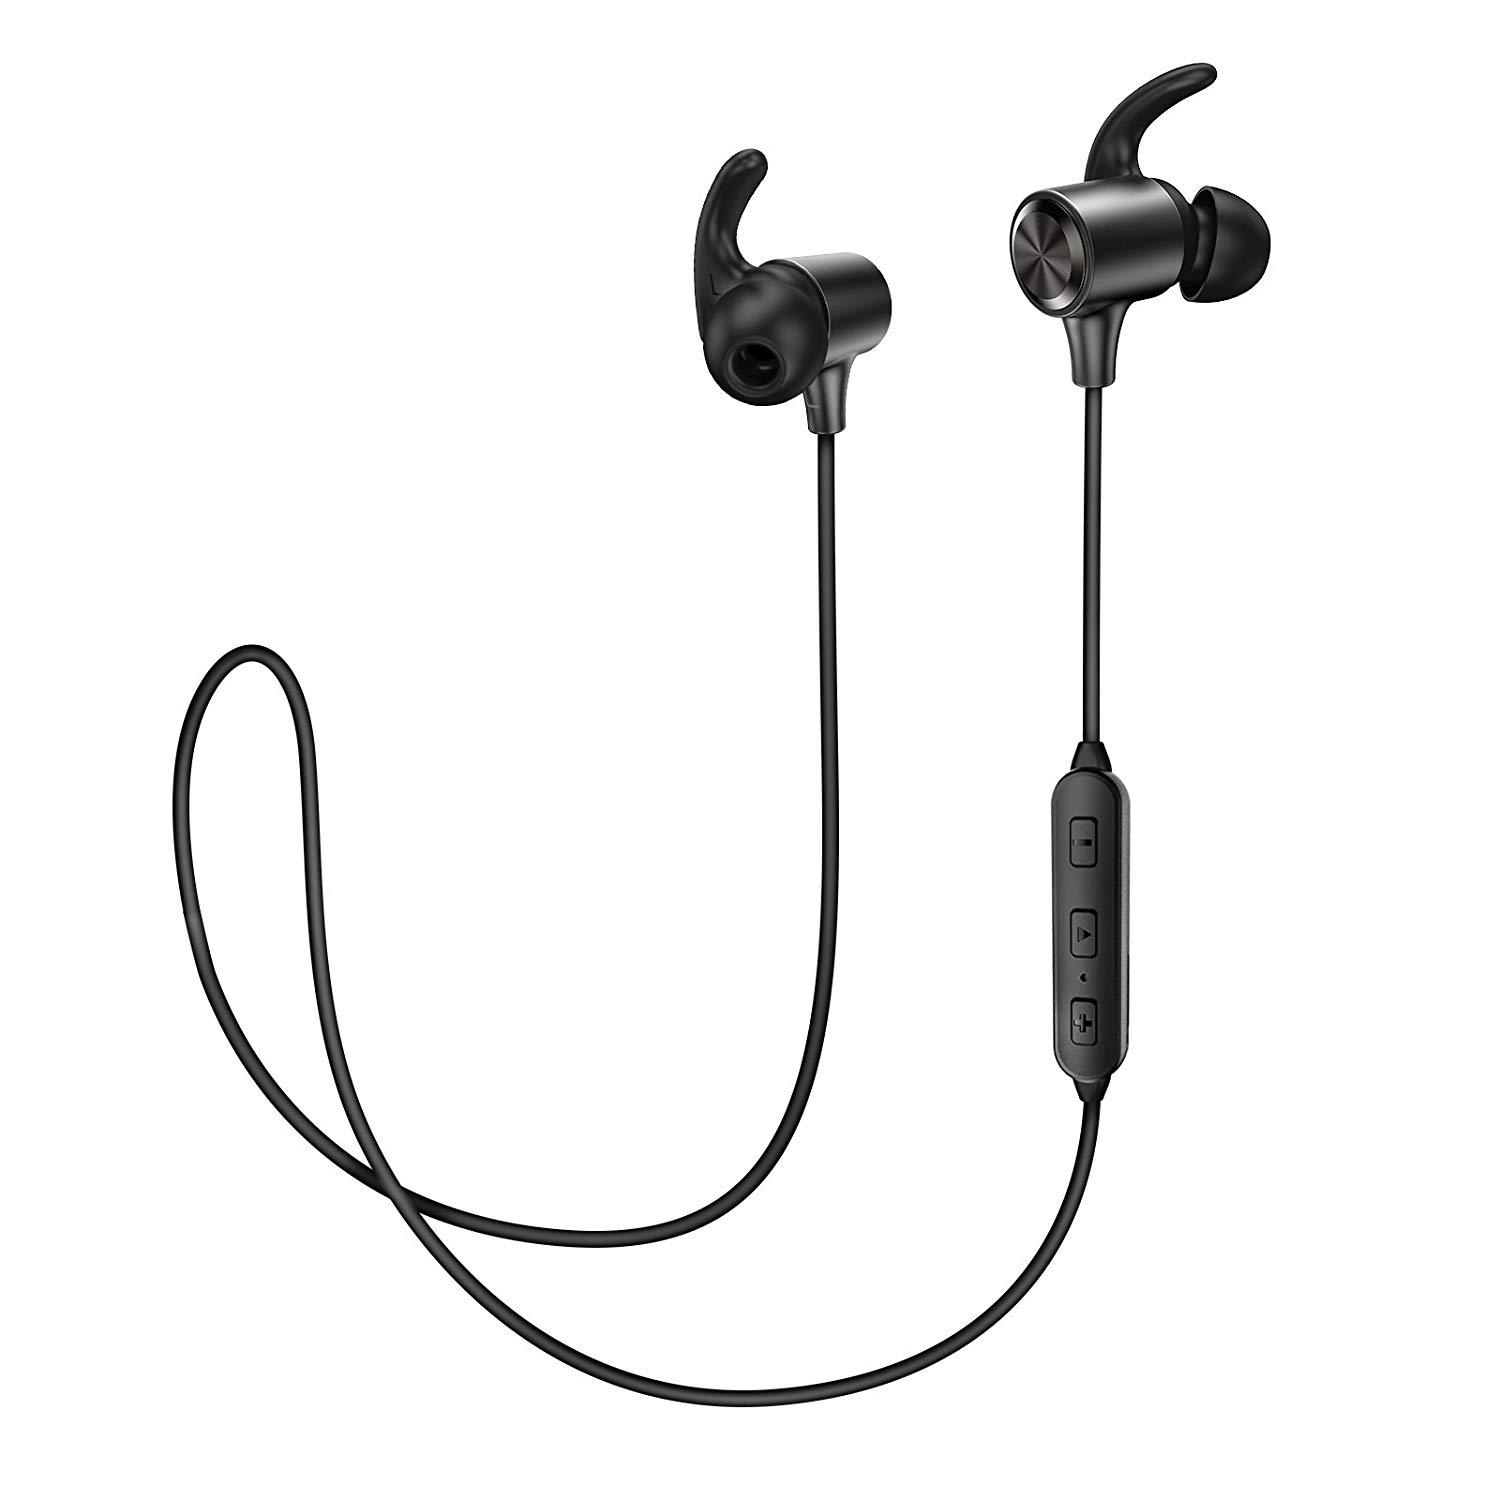 d998214c2e1 Wireless Bluetooth 4.2 Magnetic Headphones Earphones Sport Earbuds  Sweatproof aptX ANC